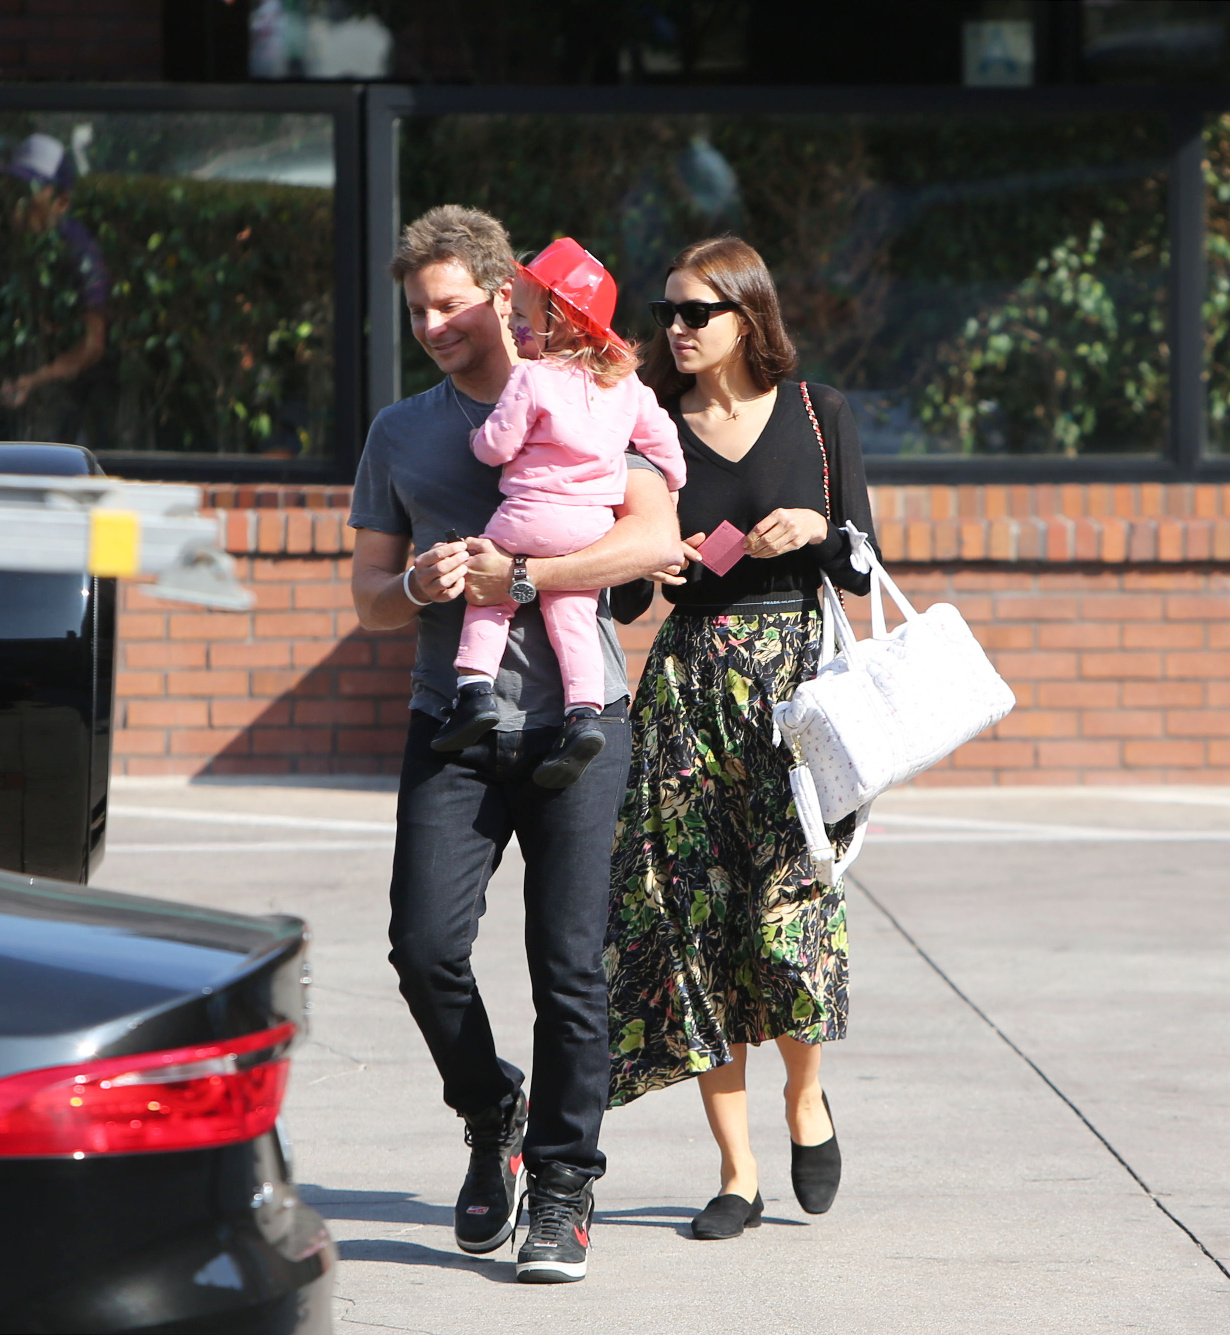 PREMIUM EXCLUSIVE Please contact X17 before any use of these exclusive photos - x17@x17agency.com   Wednesday, November 21, 2018 - Bradley Cooper and Irina Shayk gear up for a big day of eating tomorrow, taking daughter Lea along for some fun at the gym on the day before Thanksgiving. Their adorable one-year-old wears a fire chief helmet and a cute two-piece pink kitten ensemble while her supermodel mom is striking in a black v-neck blouse and floral skirt, paired with black flats.  Afterward, they stop by a medical center in their Mercedes G-Wagon. X17online.com